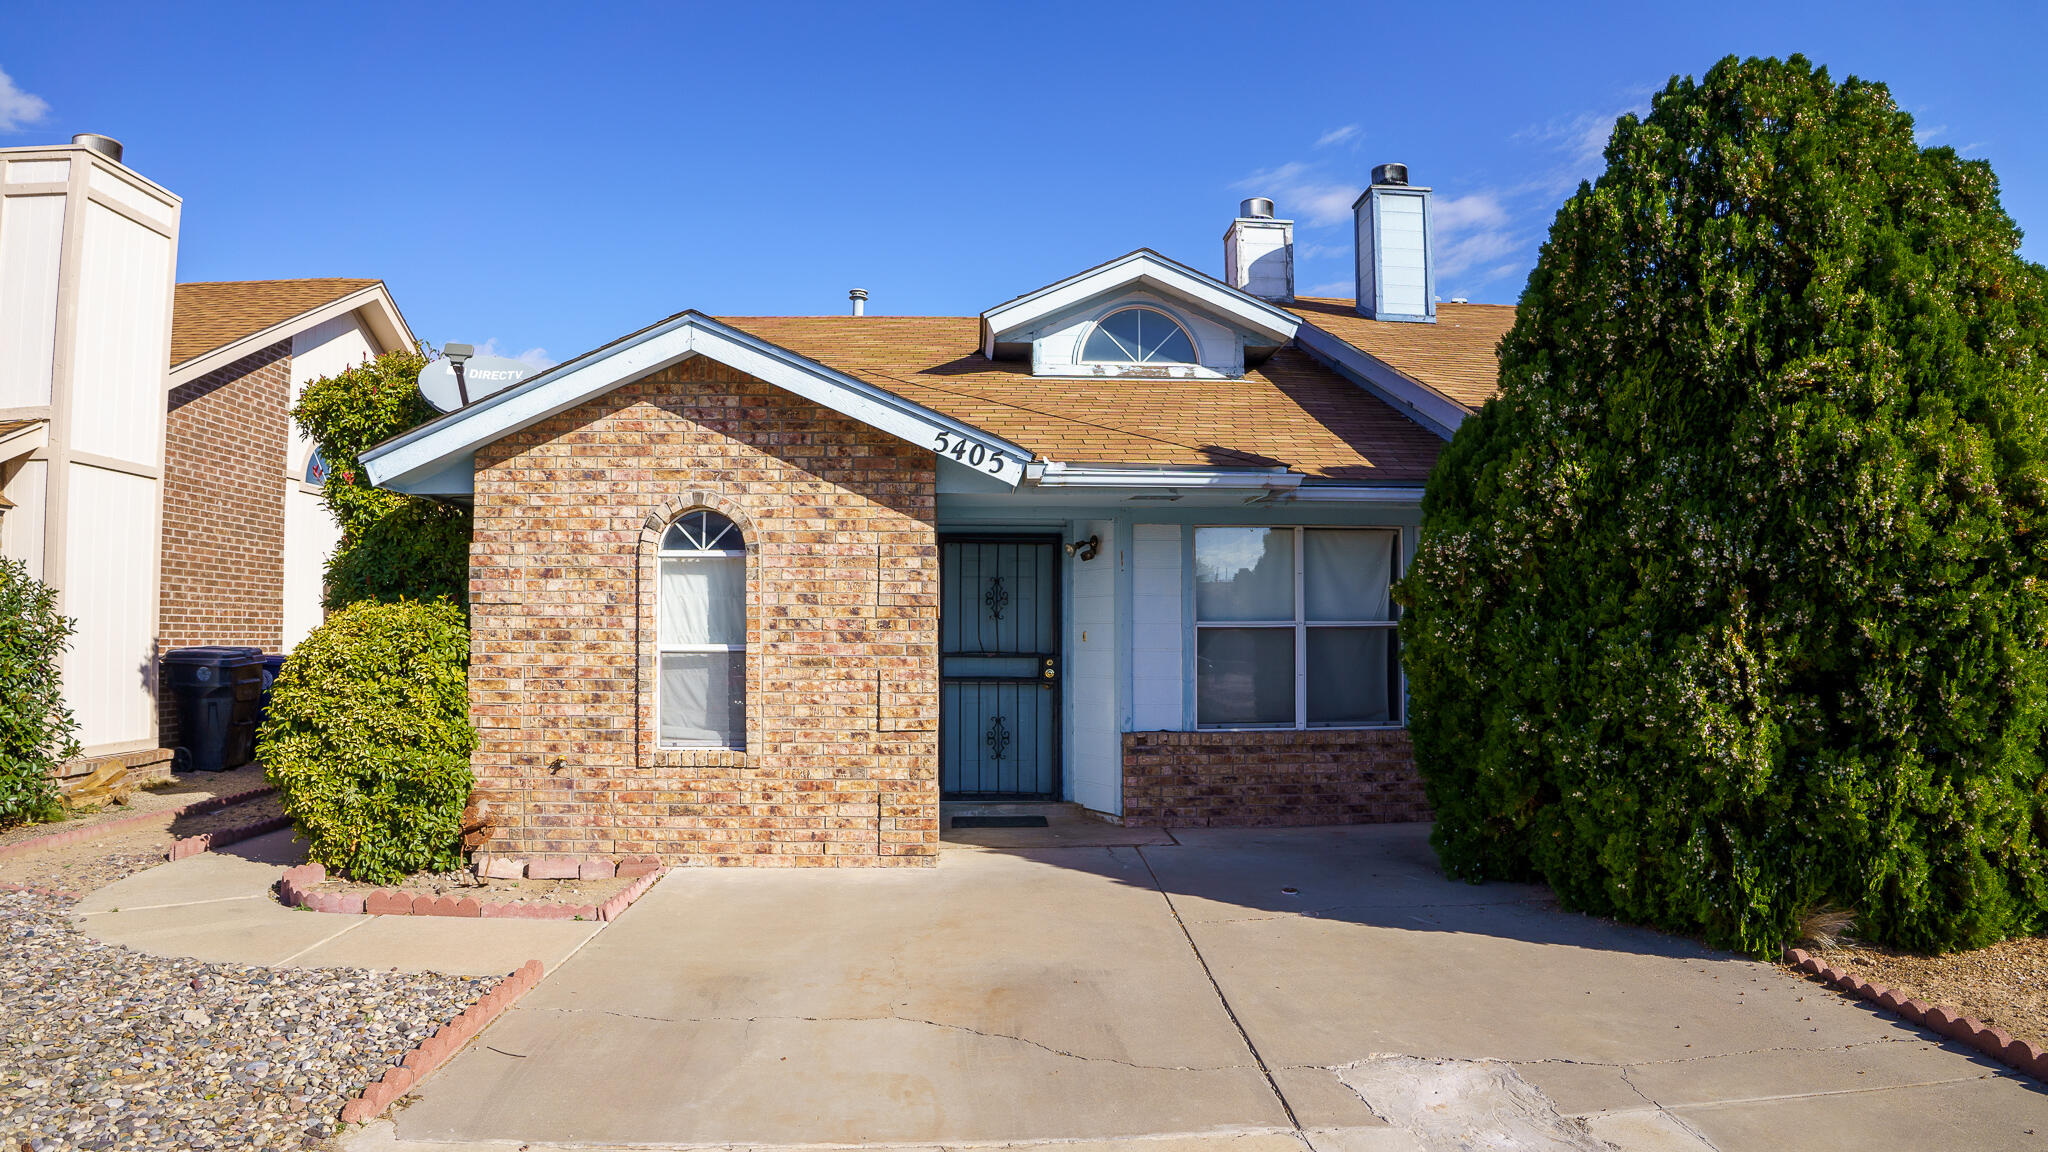 Very Nice 2br + 2ba Townhome In Taylor Ranch. Close To schools, Bus Stop For Cottonwood Mall, Walking Distance To Very Nice Park. Tile Floors through out, All Appliances Are Included. High Ceilings, bay windows in bedrooms, Plant Ledges, Cozy Fp. Very Comfortable Yard With 1br Studio And Garden Area.  What a gem!!